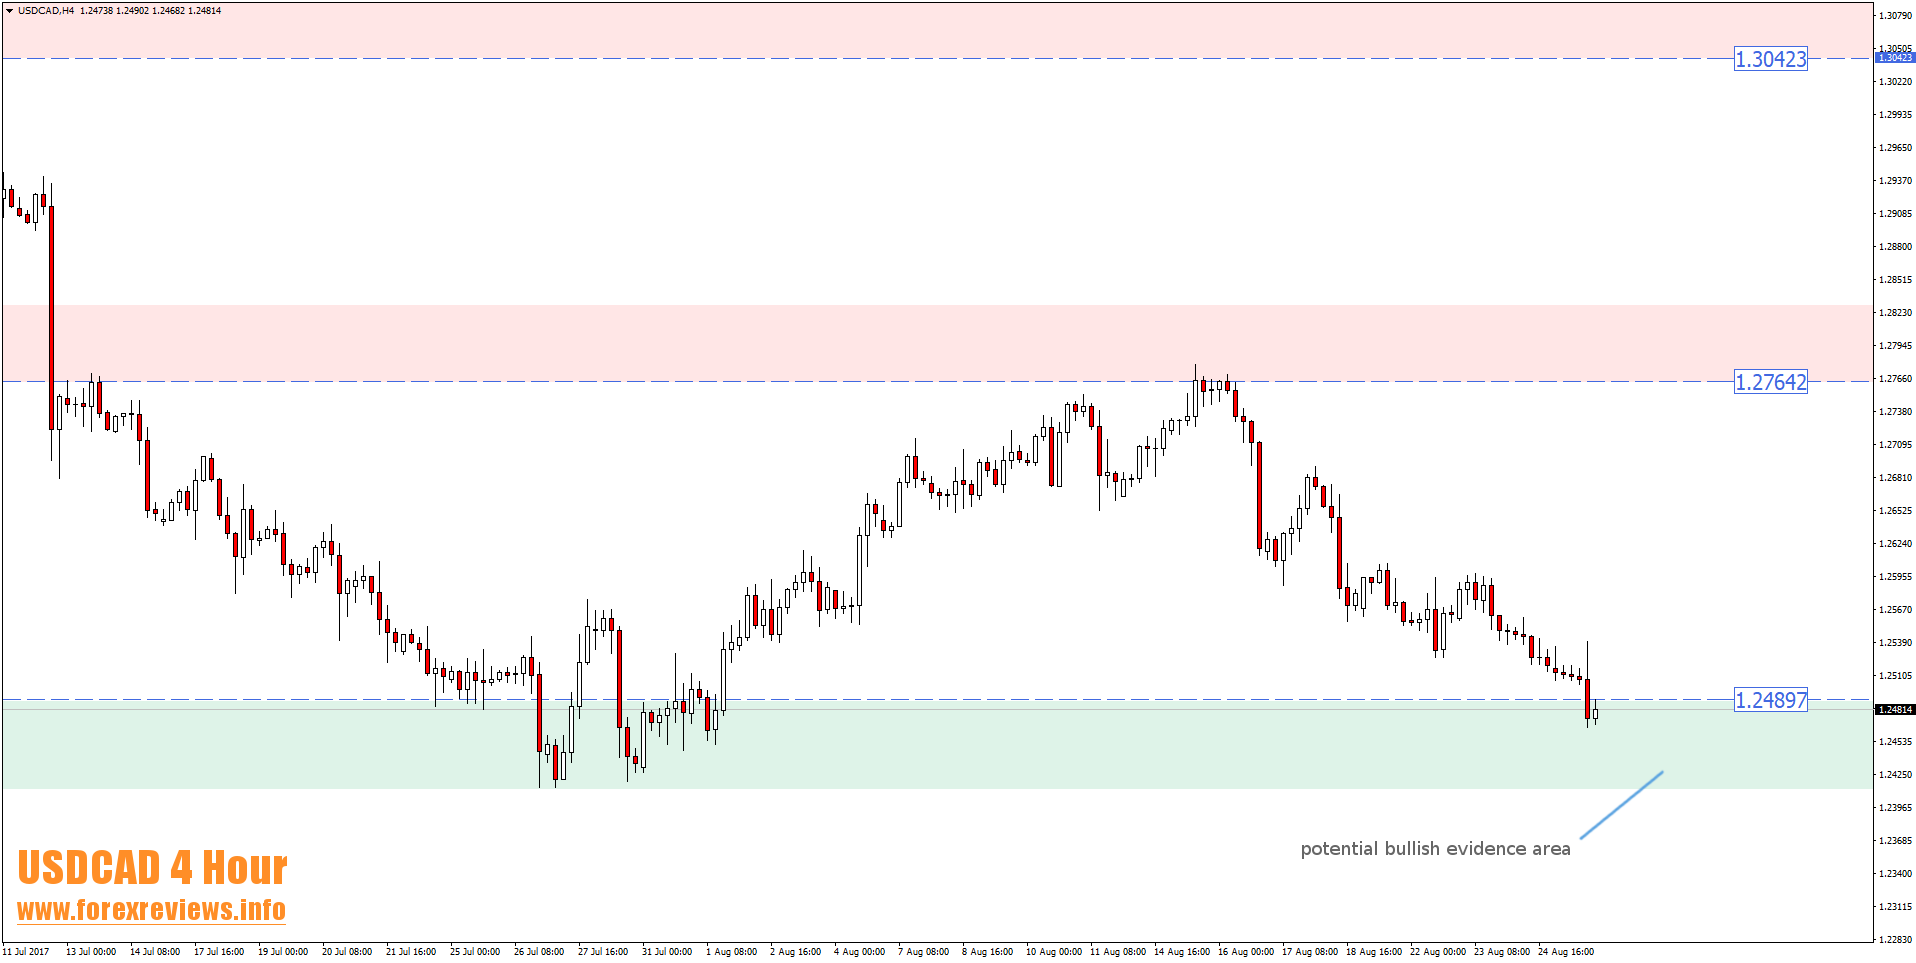 usdcad-4-hour-trade-setup-areas